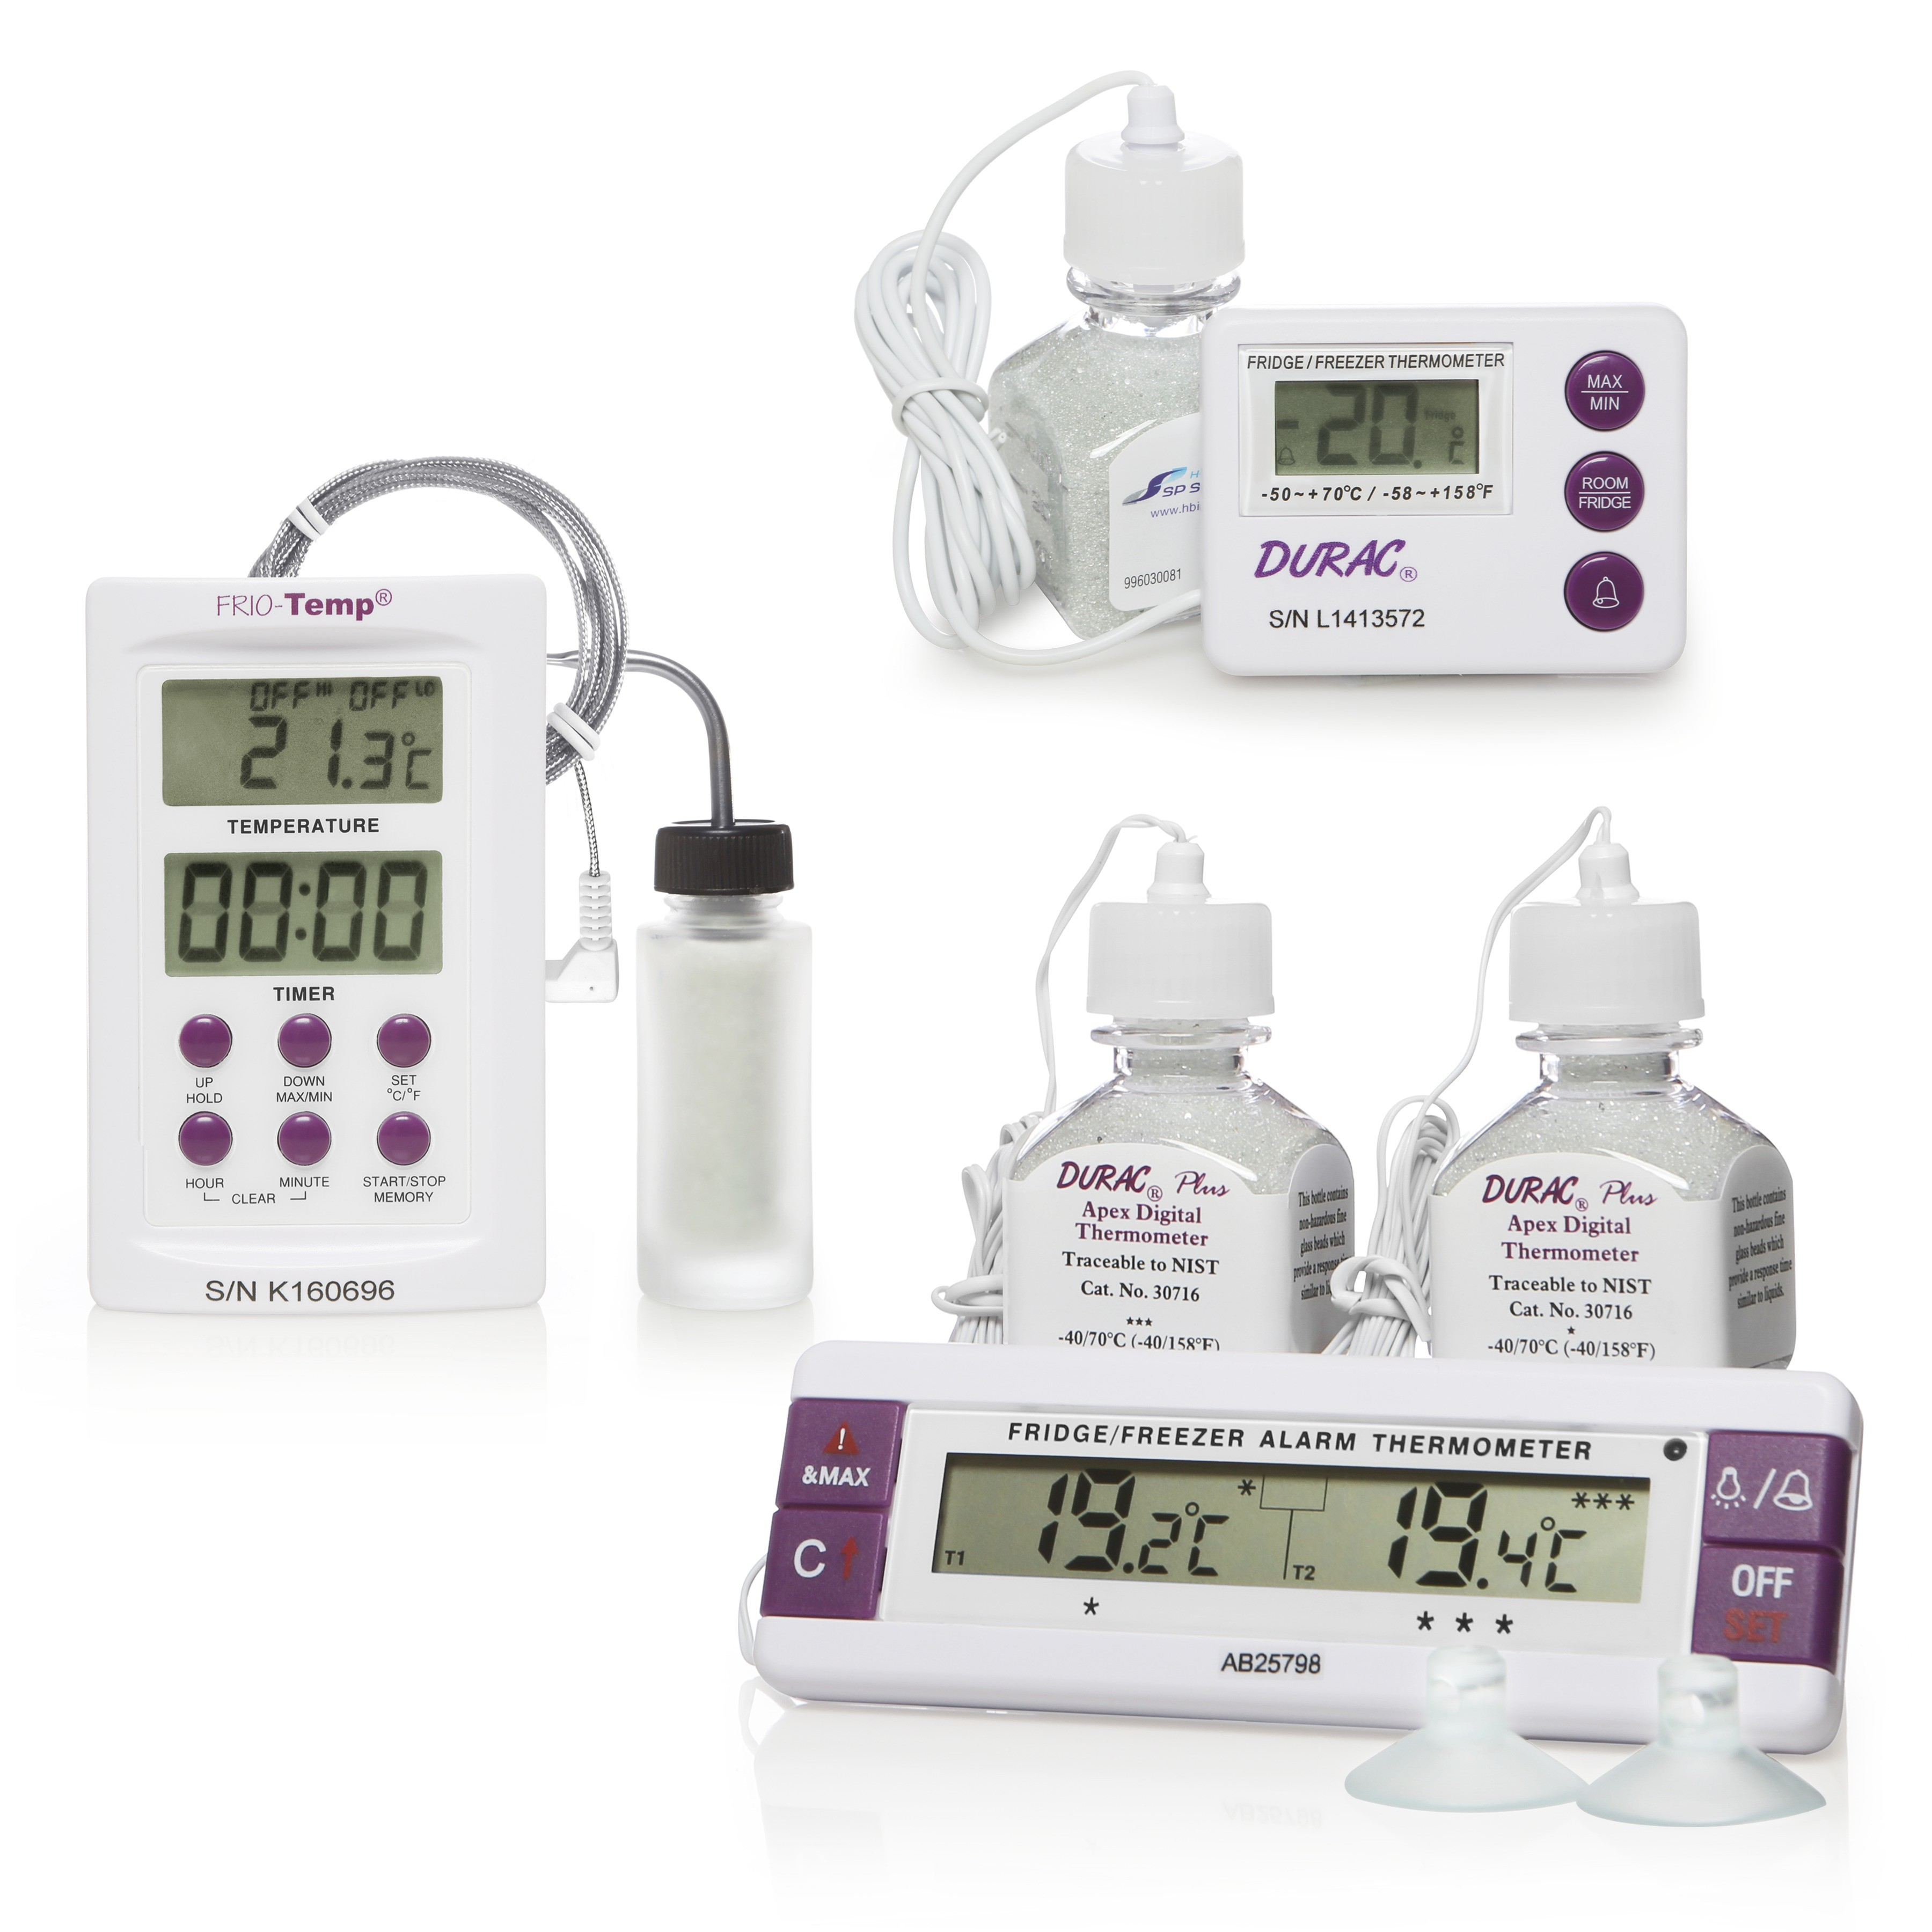 H-B Frio-Temp Calibrated Electronic Verification Thermometers for Freezers, Refrigerators and Incubators